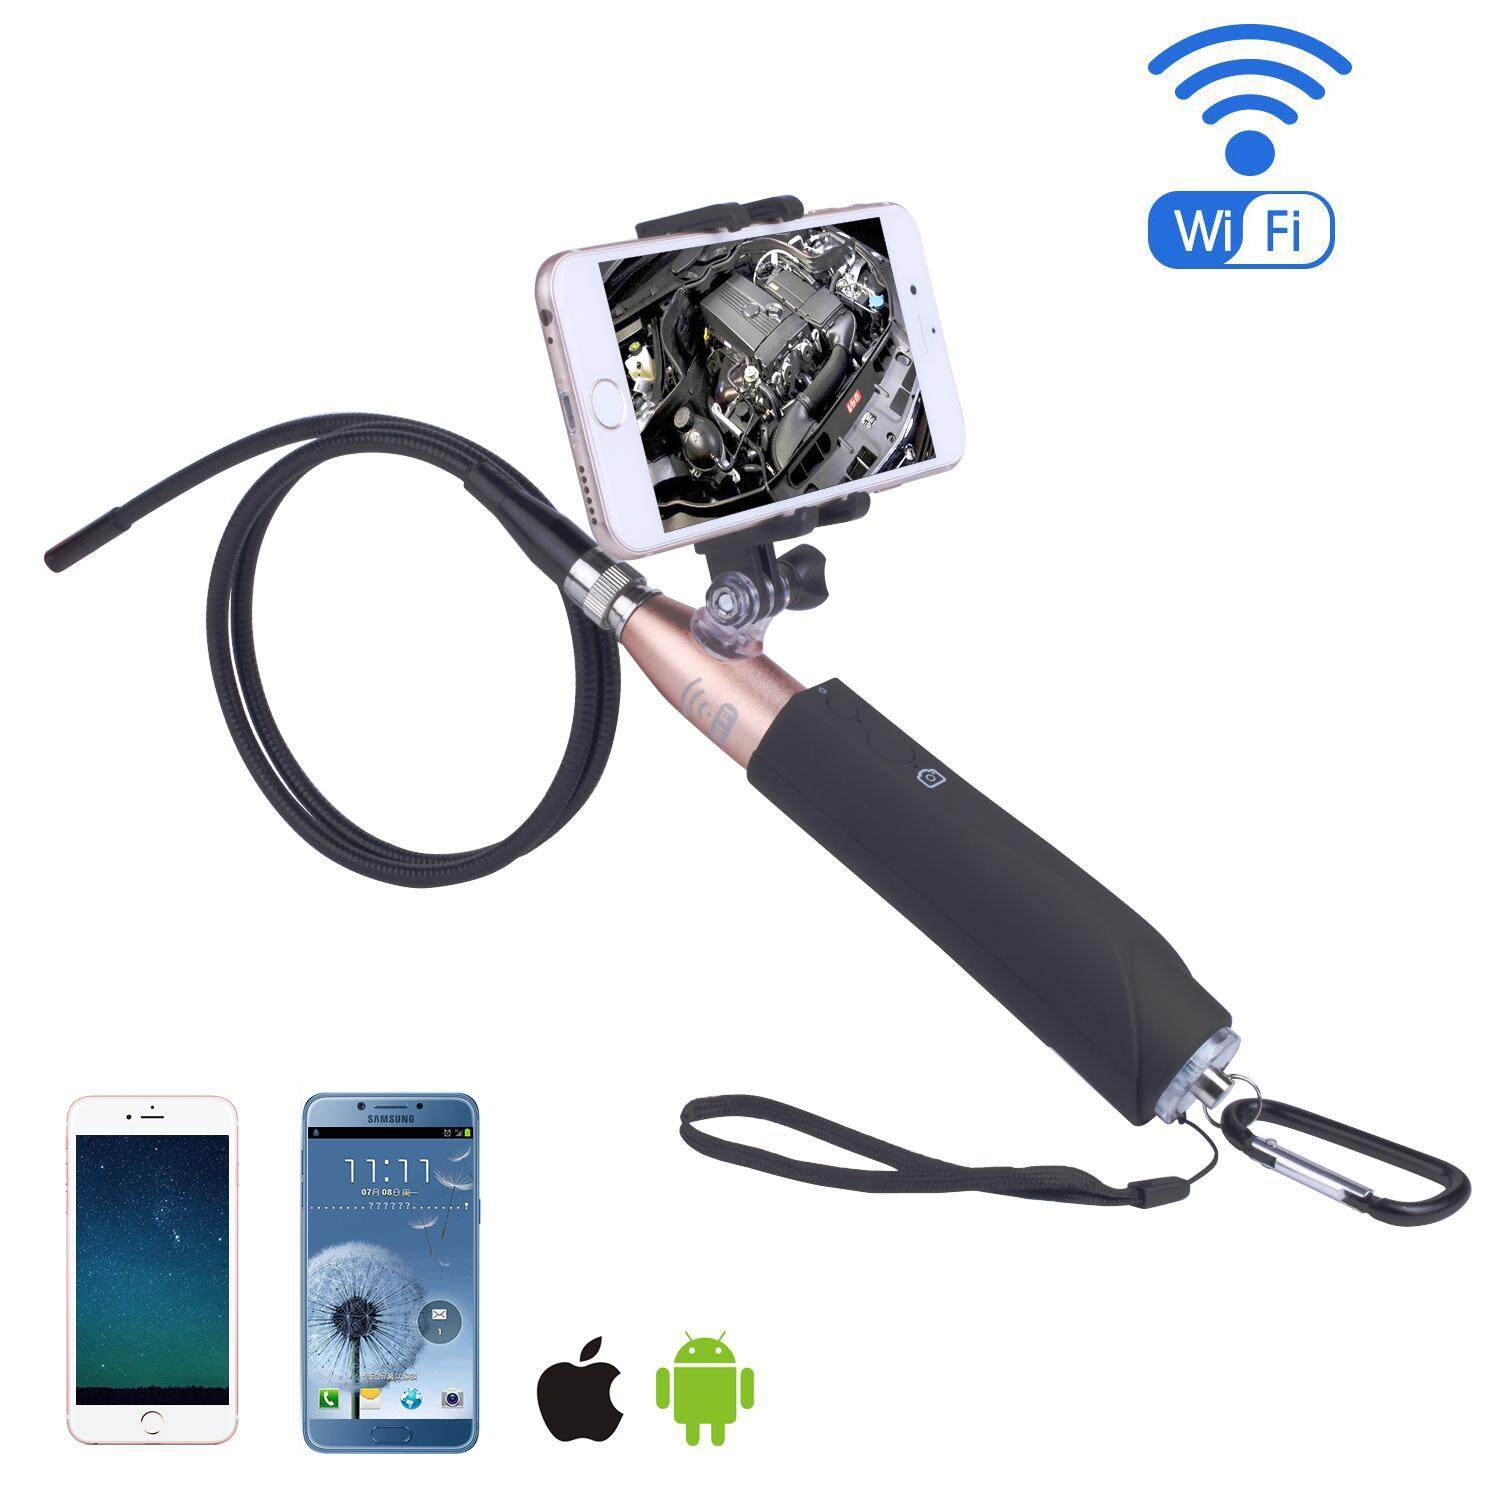 Fuskm Nirkabel Endoskopi-iPhone Android WIFI Borescope Video Inspection Kamera. 2 Juta Piksel HD Ular Kamera Anti-Air USB HD 720 P 6 LED Endoskopi Industri untuk Android/Jendela/IOS (1 M) -Internasional